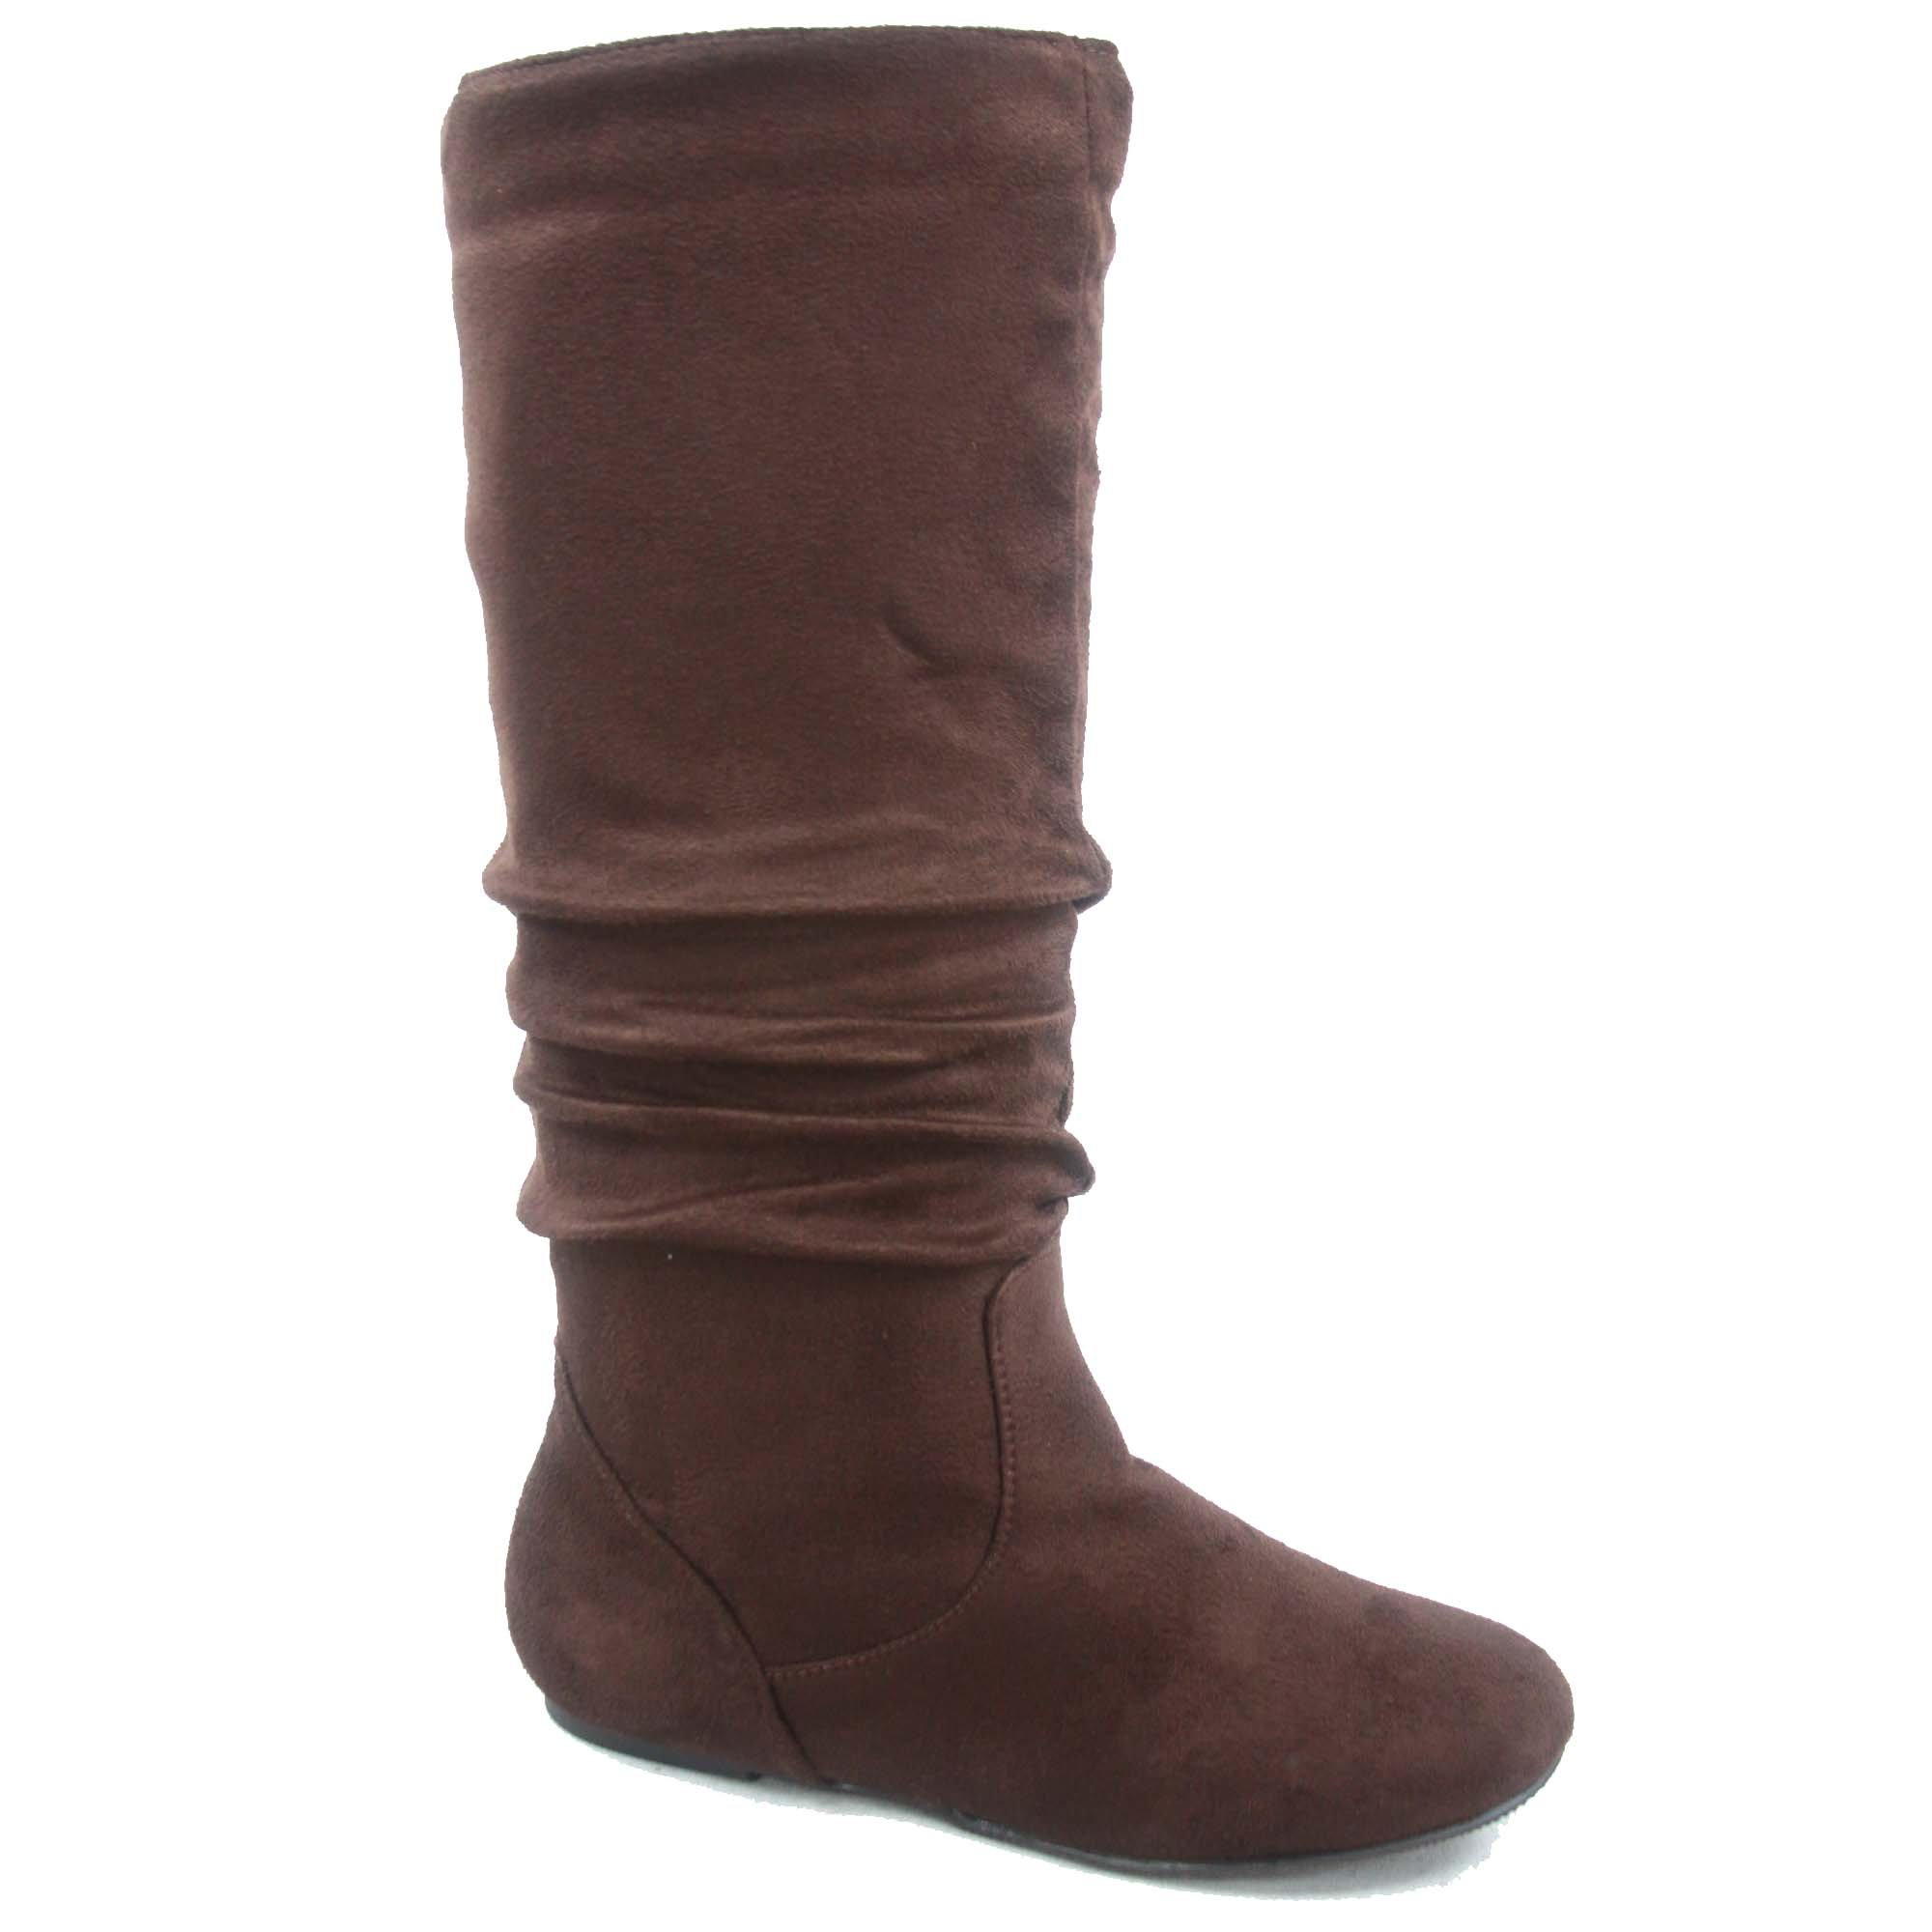 Top Moda Data-1 Women's Shoes Cute & Comfort Round Toe Flat Heel Slouchy Mid Calf Boot (8.5, Brown) by Top Moda (Image #1)